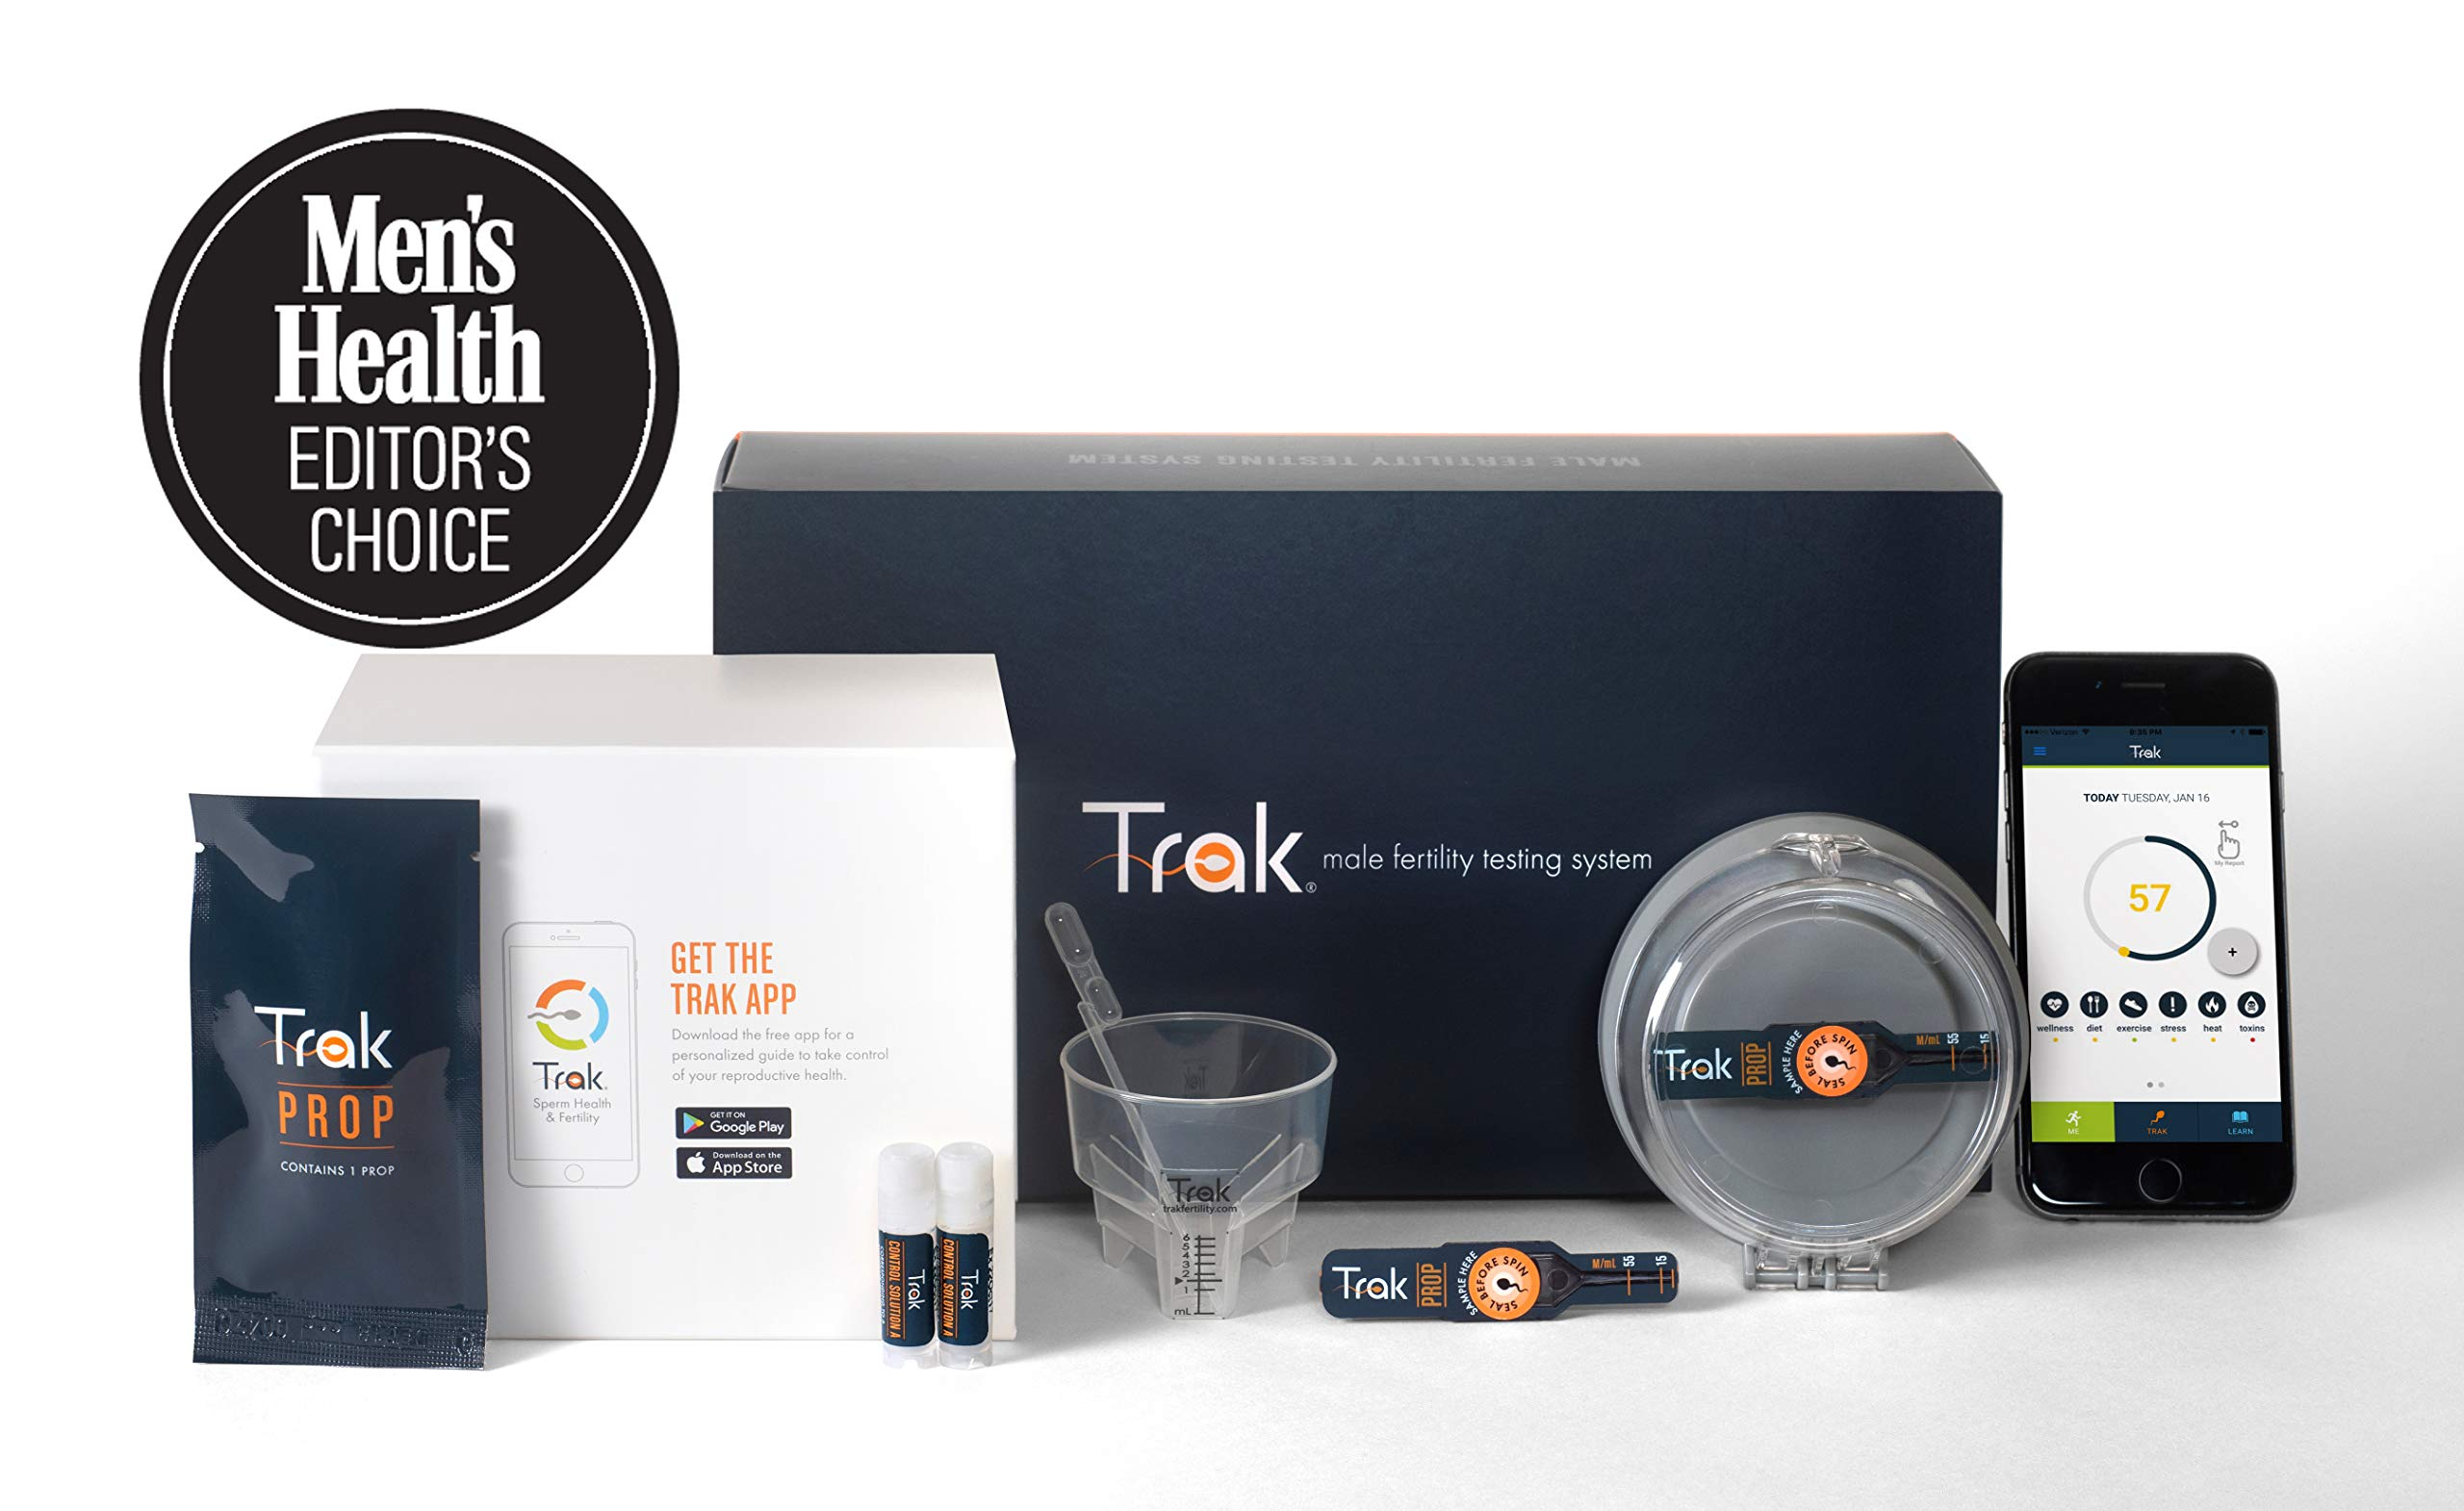 Trak Male Fertility Testing System: 4-Test Kit | Test Sperm Count and Semen Volume At Home | Indicates Results as Low, Moderate, or Optimal for Conception | FSA/HSA Eligible | Accurate as Lab Tests by Trak